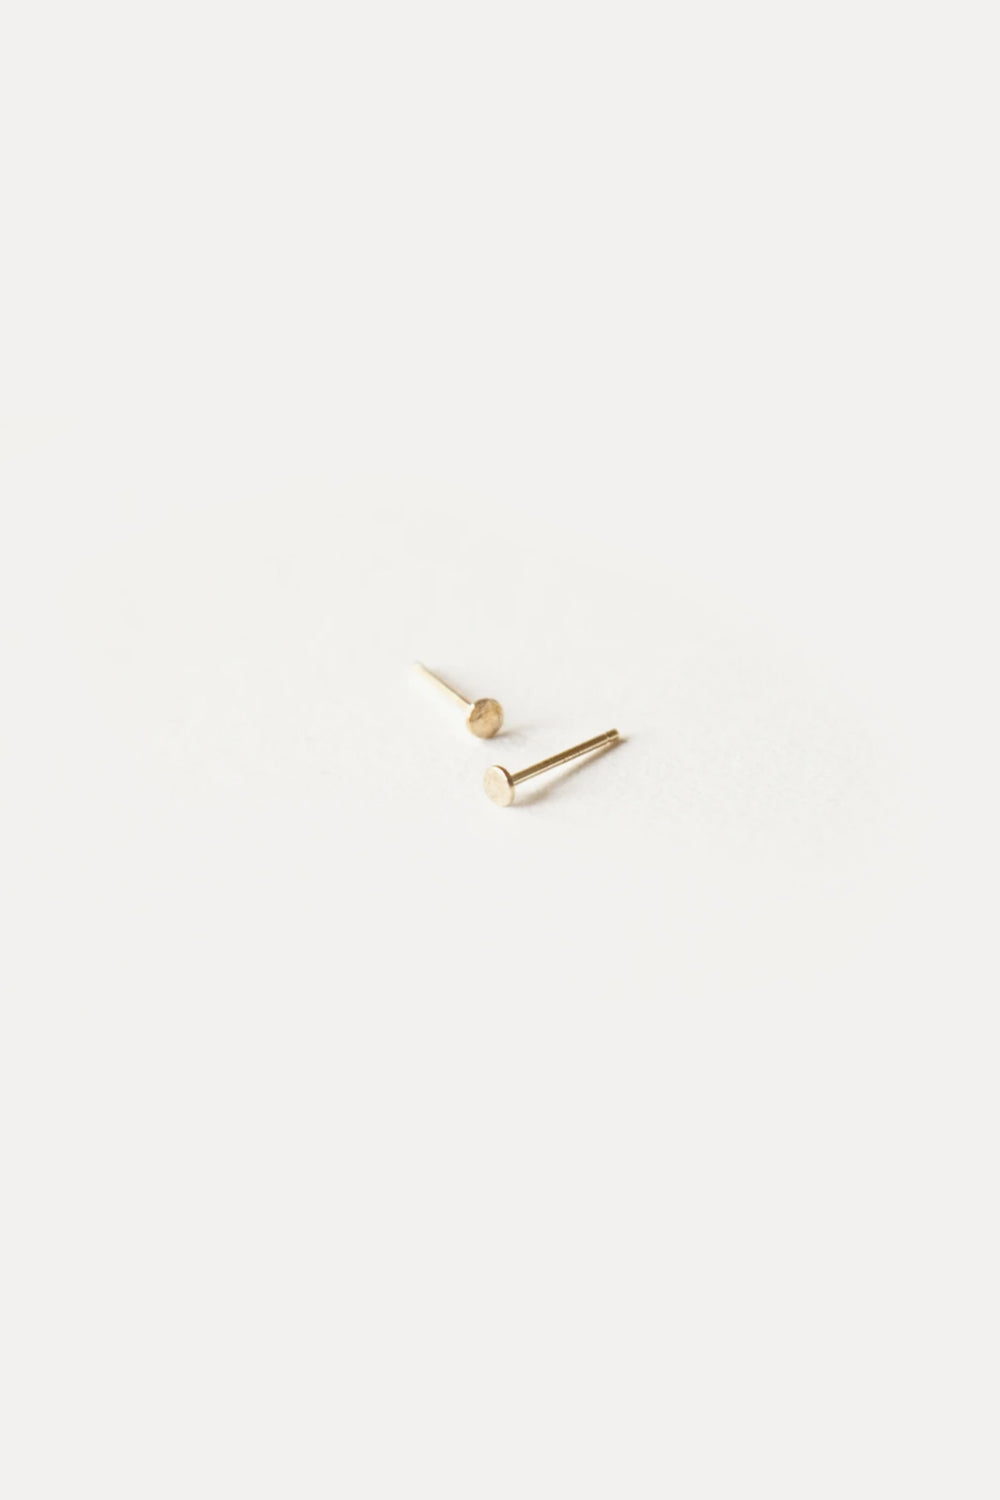 Gold Dot Earrings- 2mm